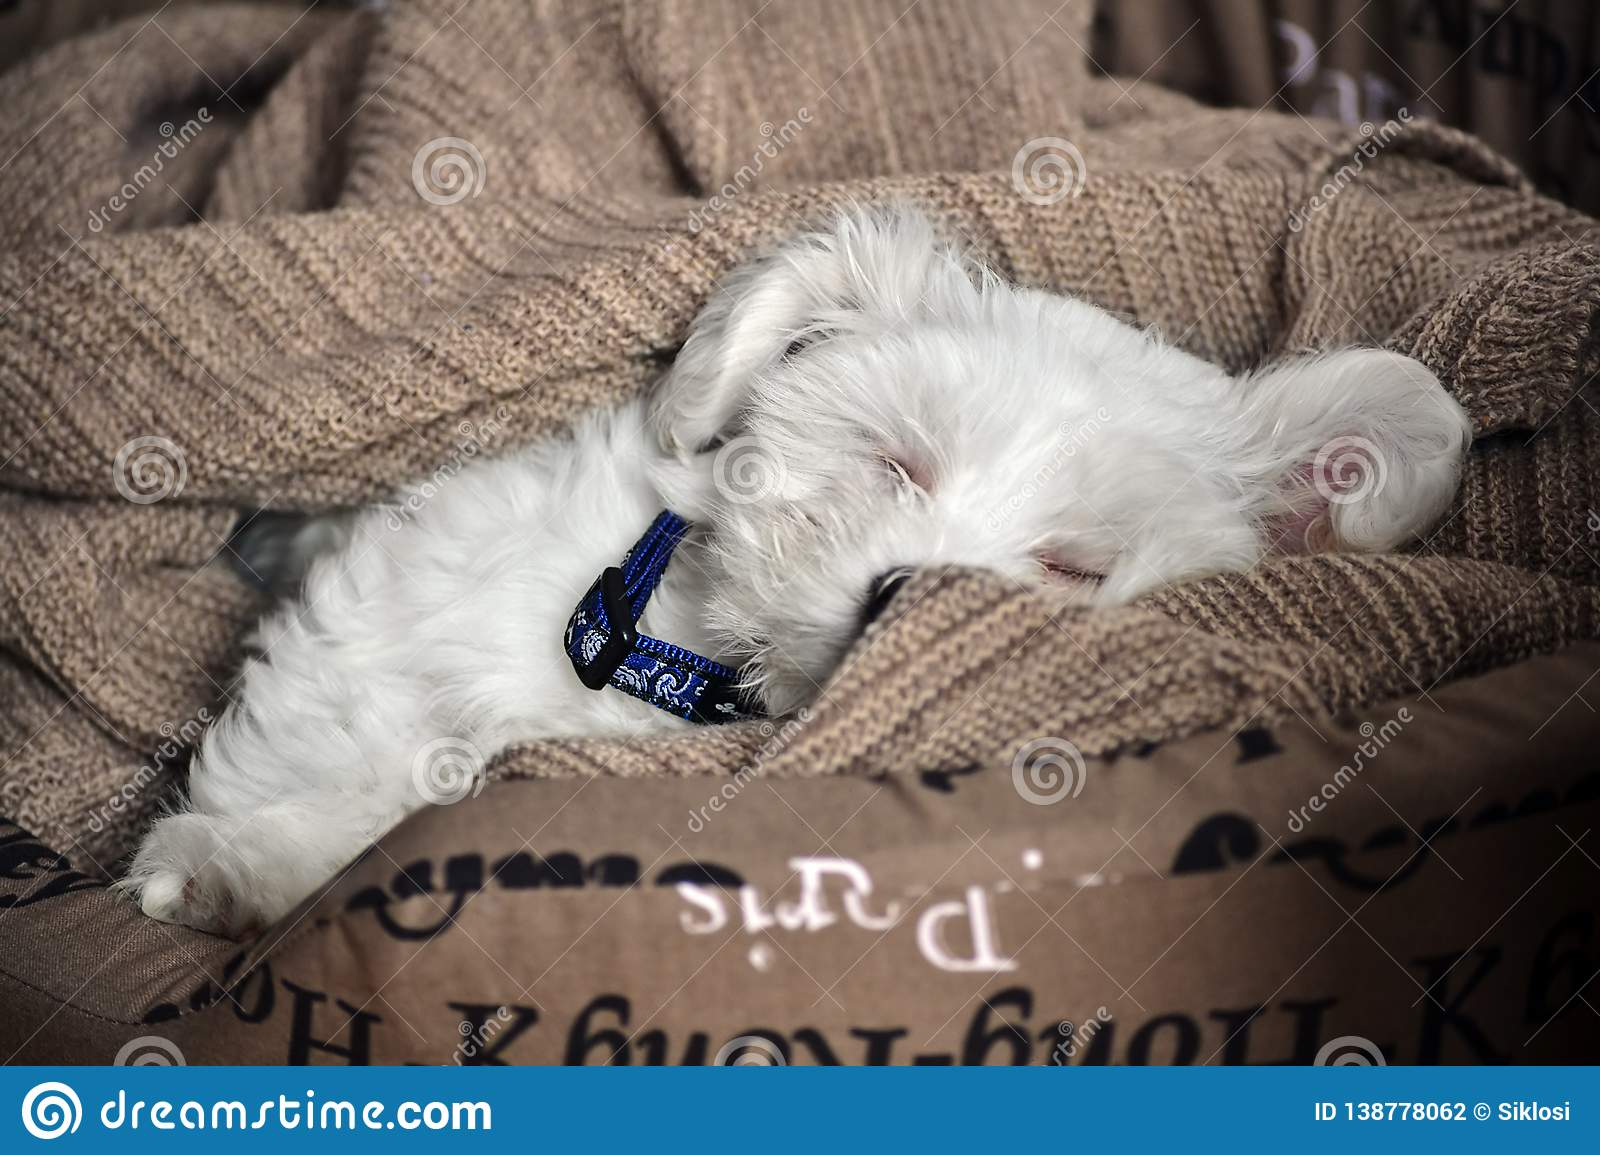 241 Maltese Puppy Sleeping Photos Free Royalty Free Stock Photos From Dreamstime